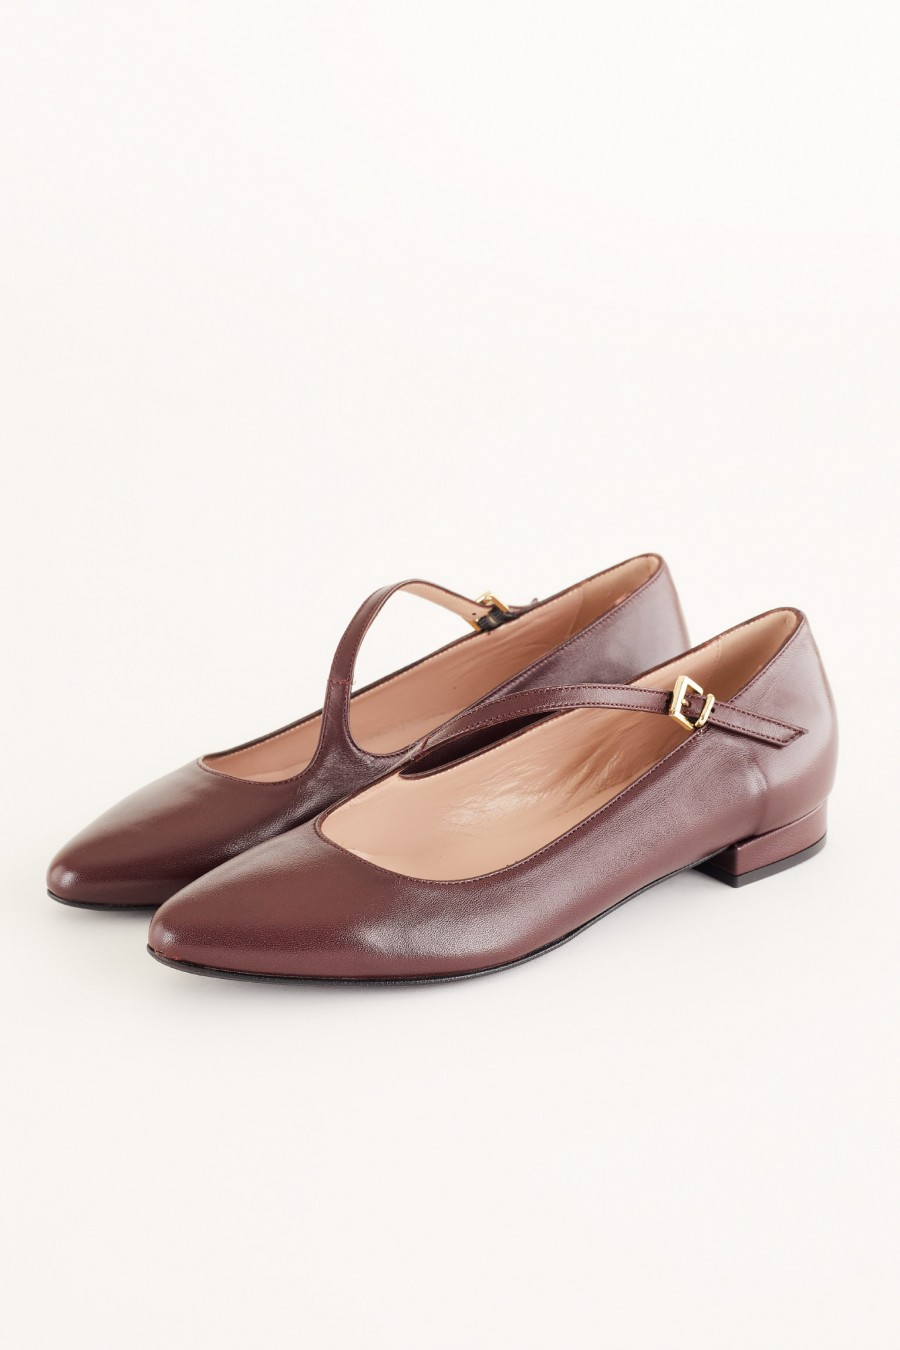 flats in wine nappa leather